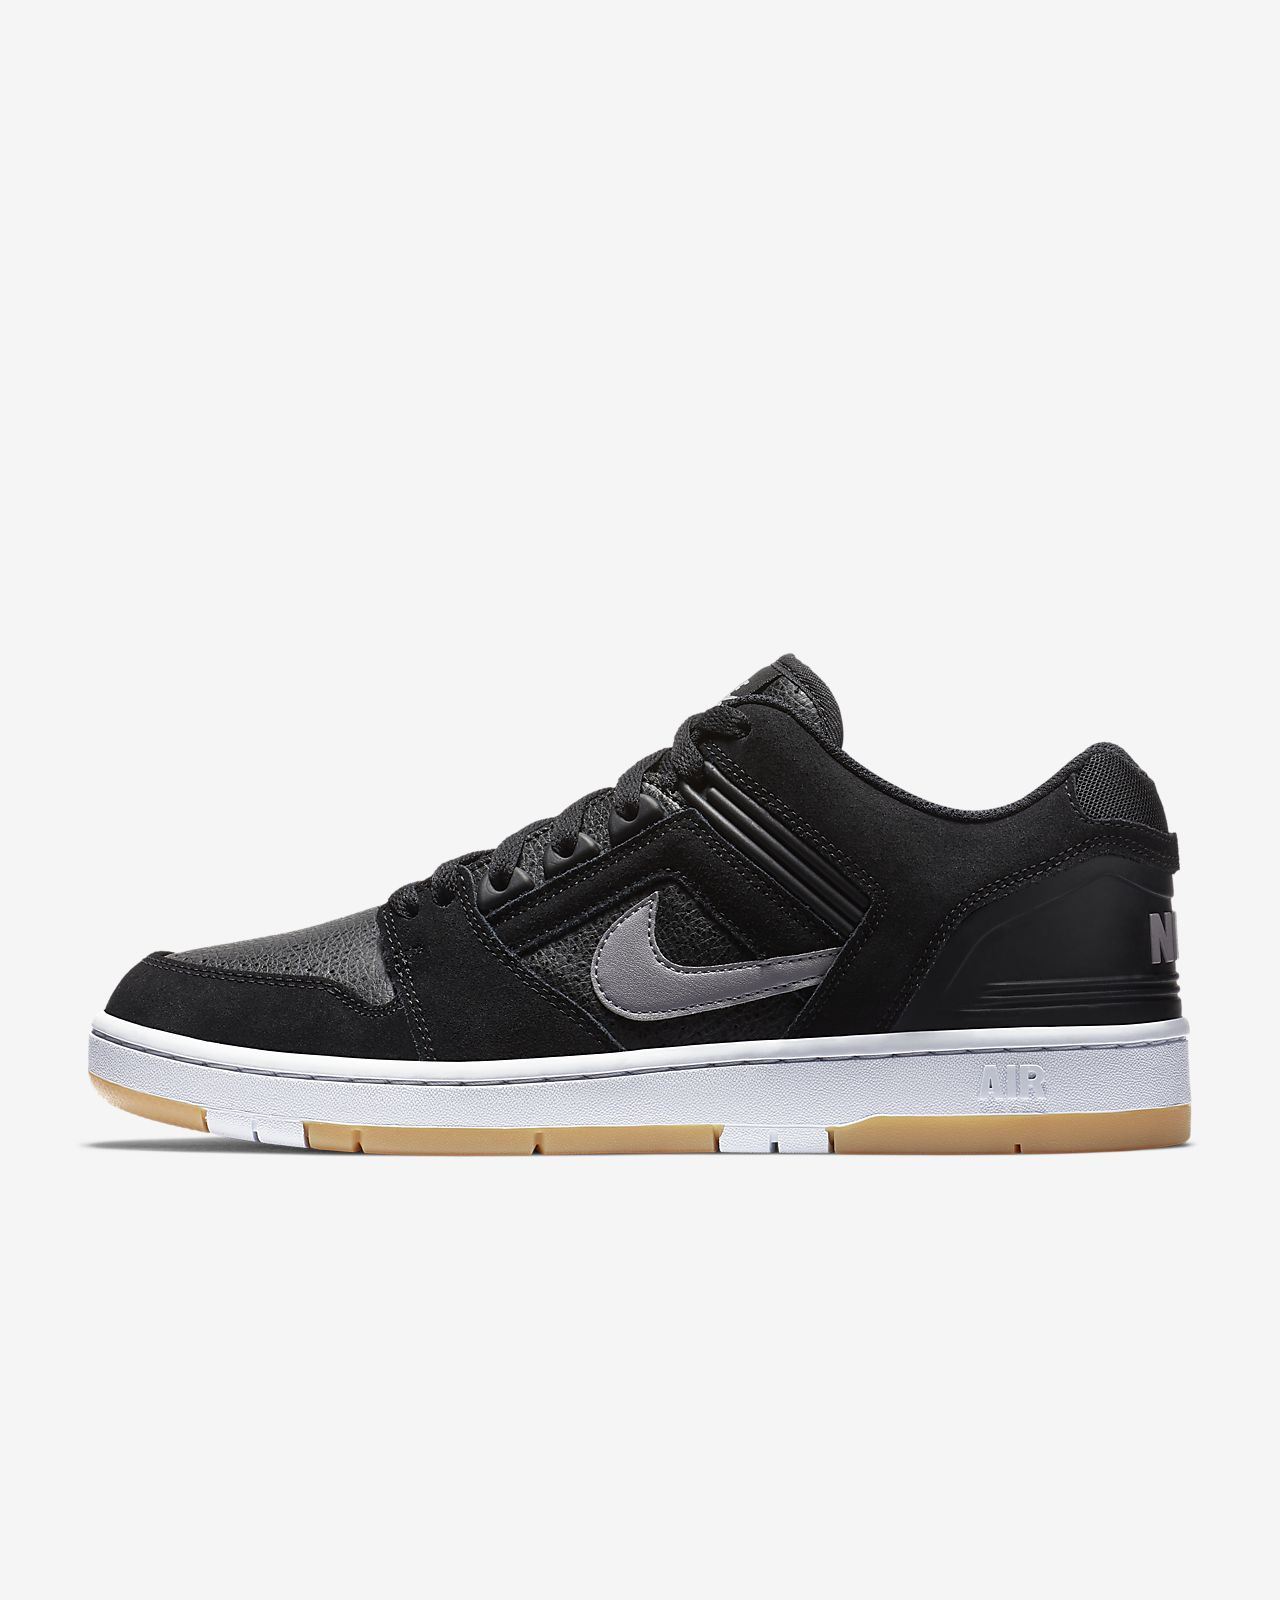 separation shoes 18aa3 0089a ... Nike SB Air Force II Low Men s Skateboarding Shoe